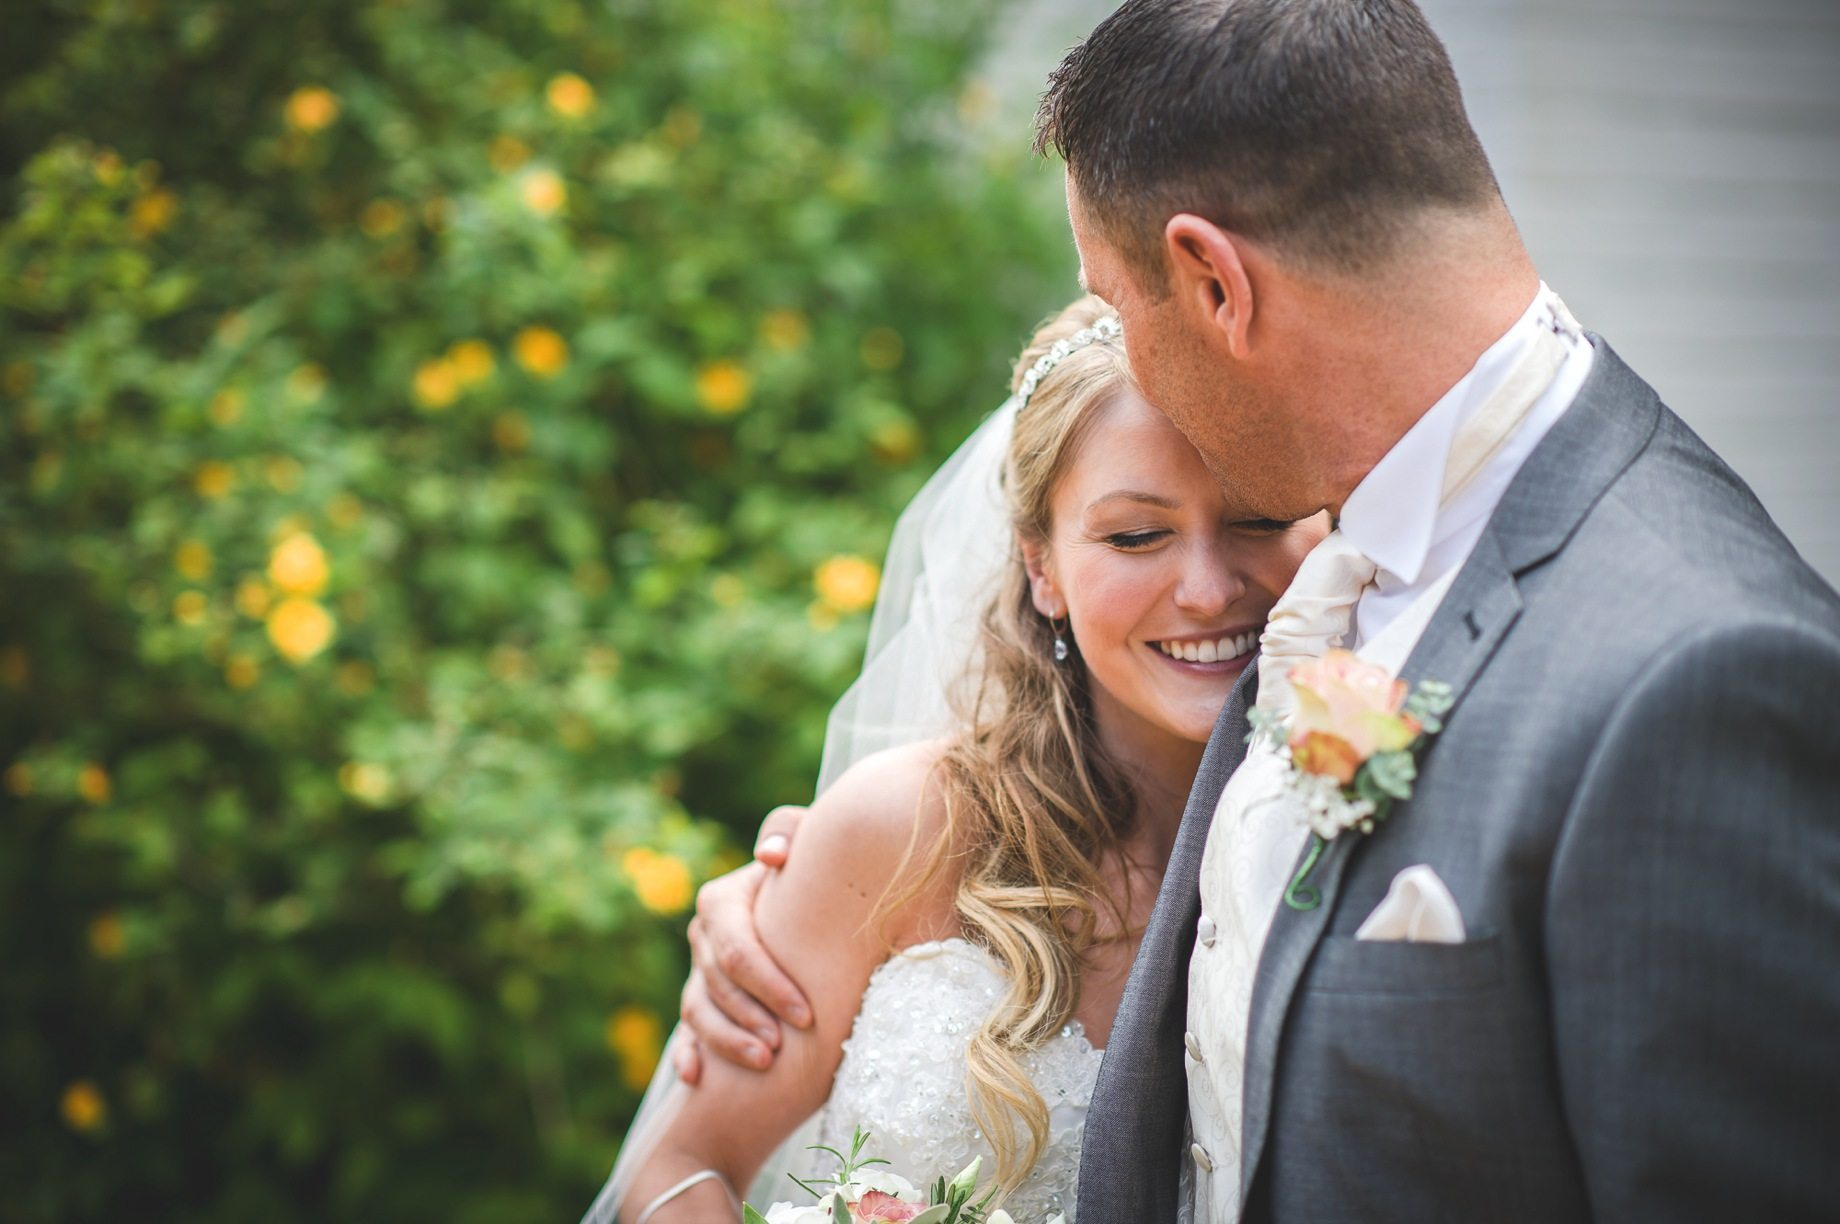 54Best Wedding Photography Guy Collier